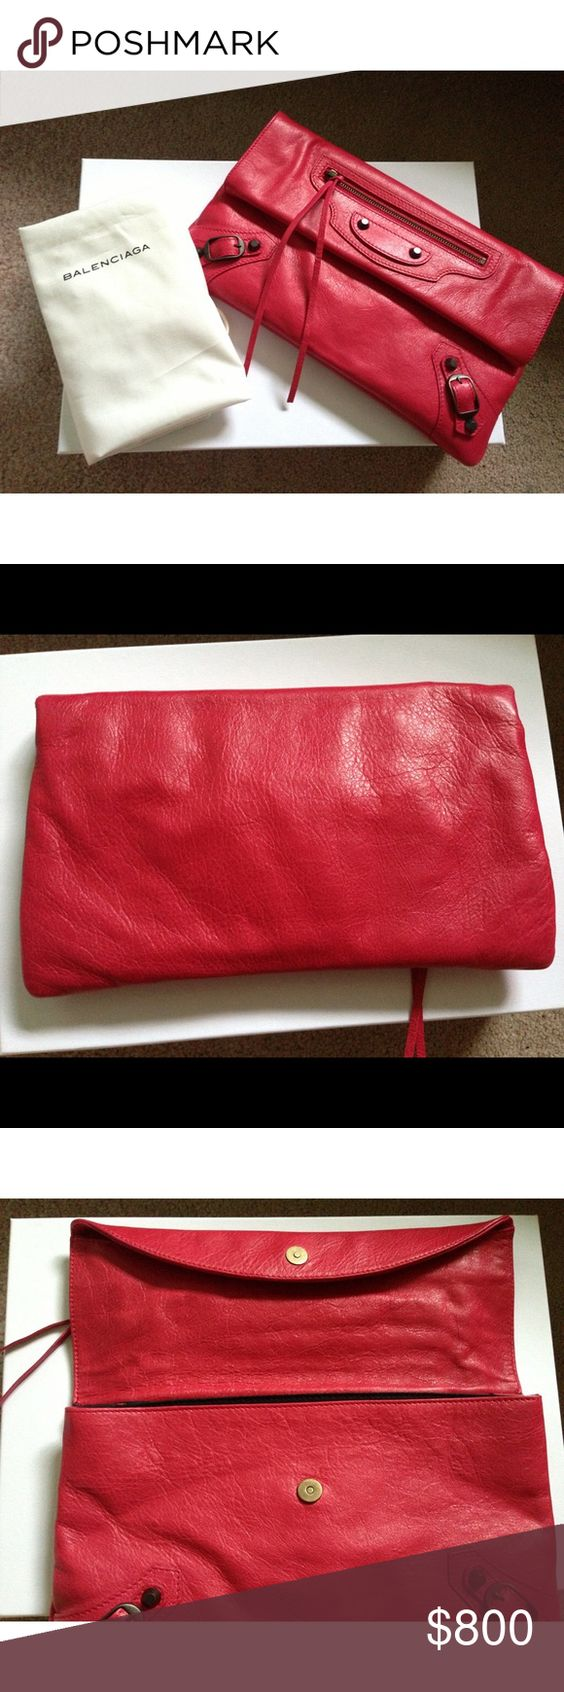 Balenciaga Classic Envelope in Rose Thulian Purchased on May 28 2012 at South Coast Plaza Includes dust bag and box. Gently used. Balenciaga Bags Clutches & Wristlets